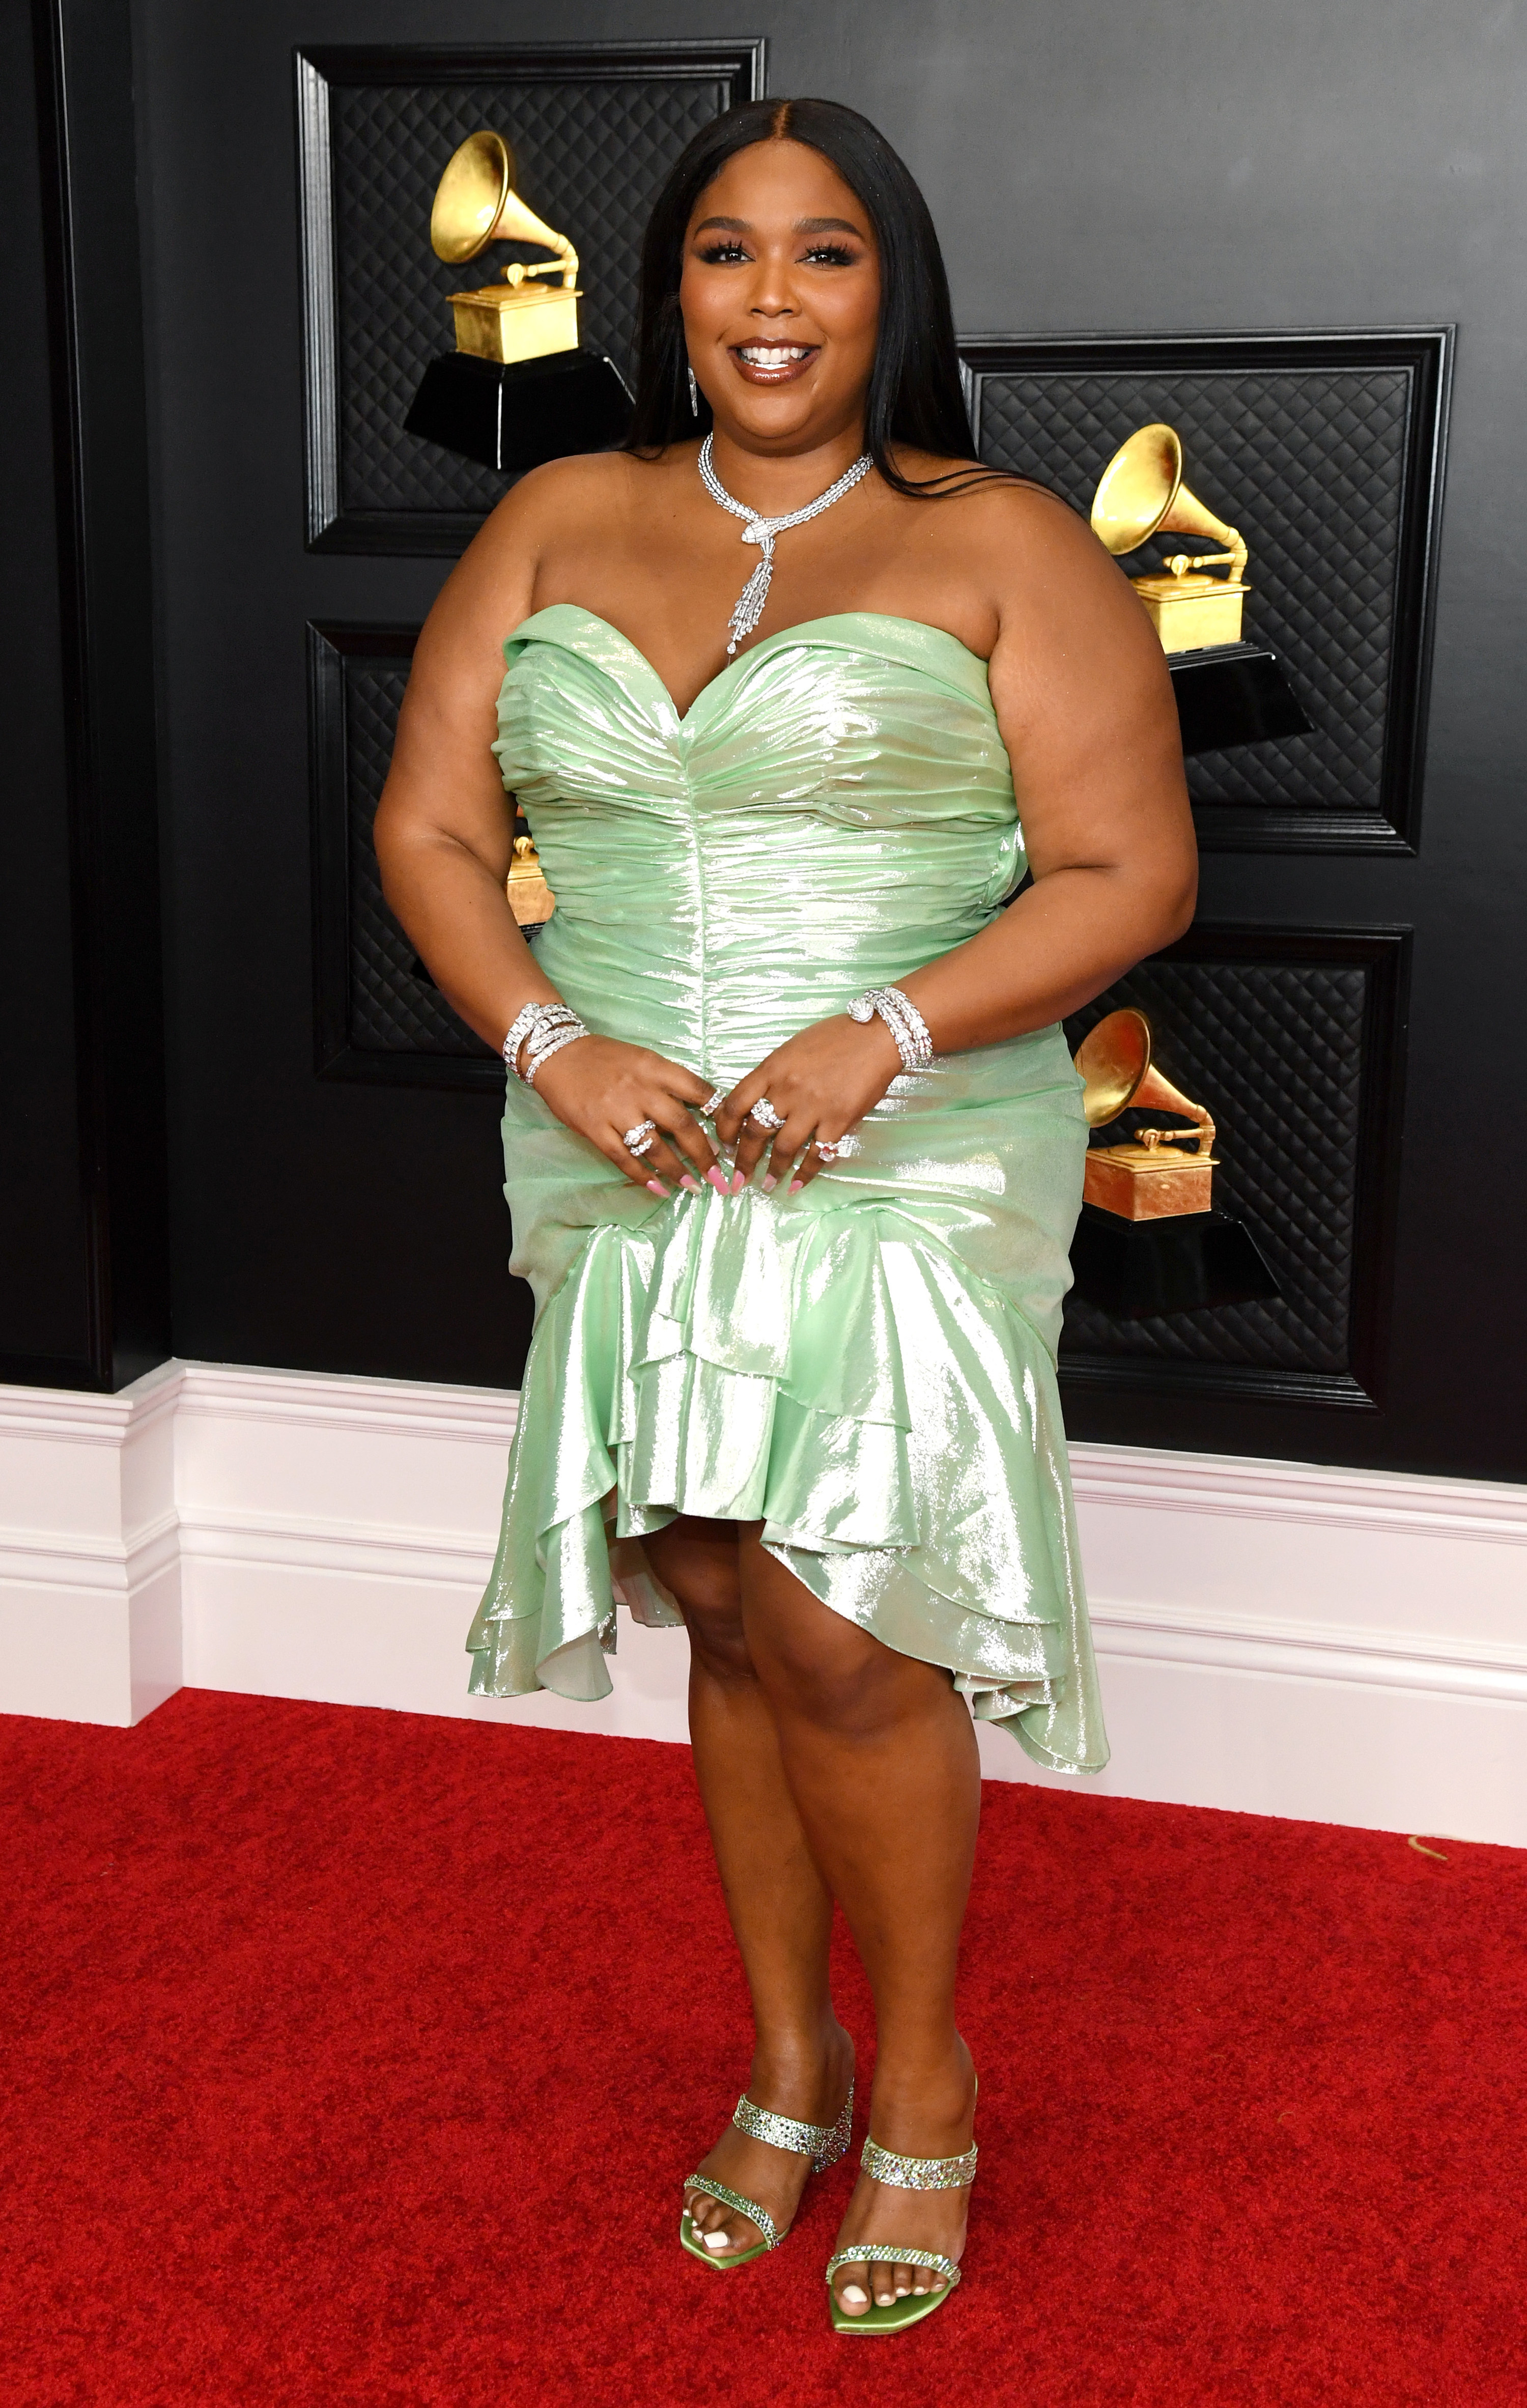 Lizzo is pictured at the Grammy Awards in 2021